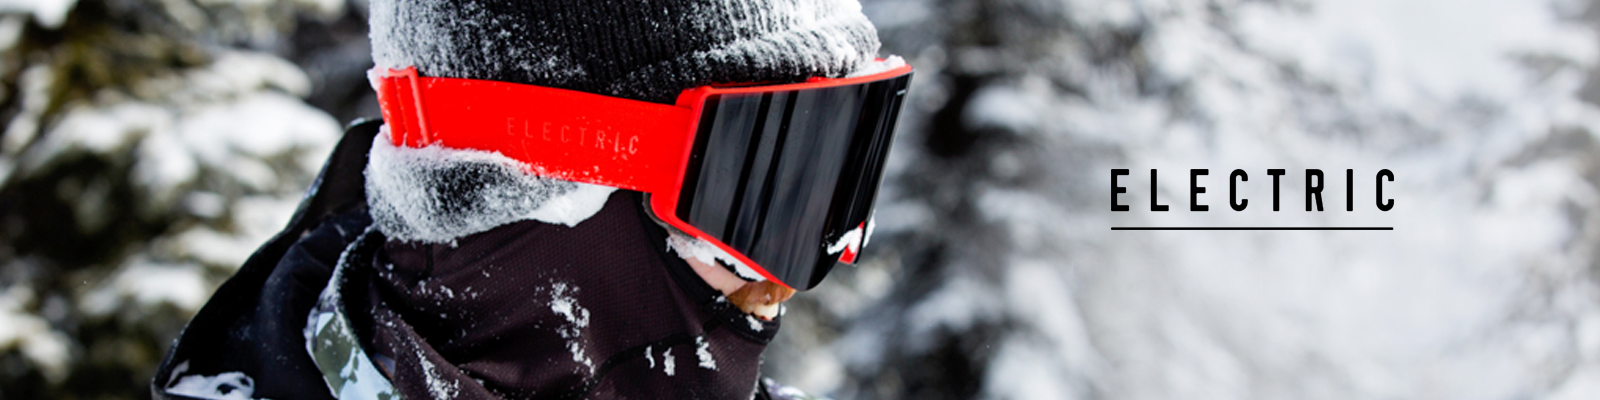 rhinosafetyglasses.com-goggle-banner.png